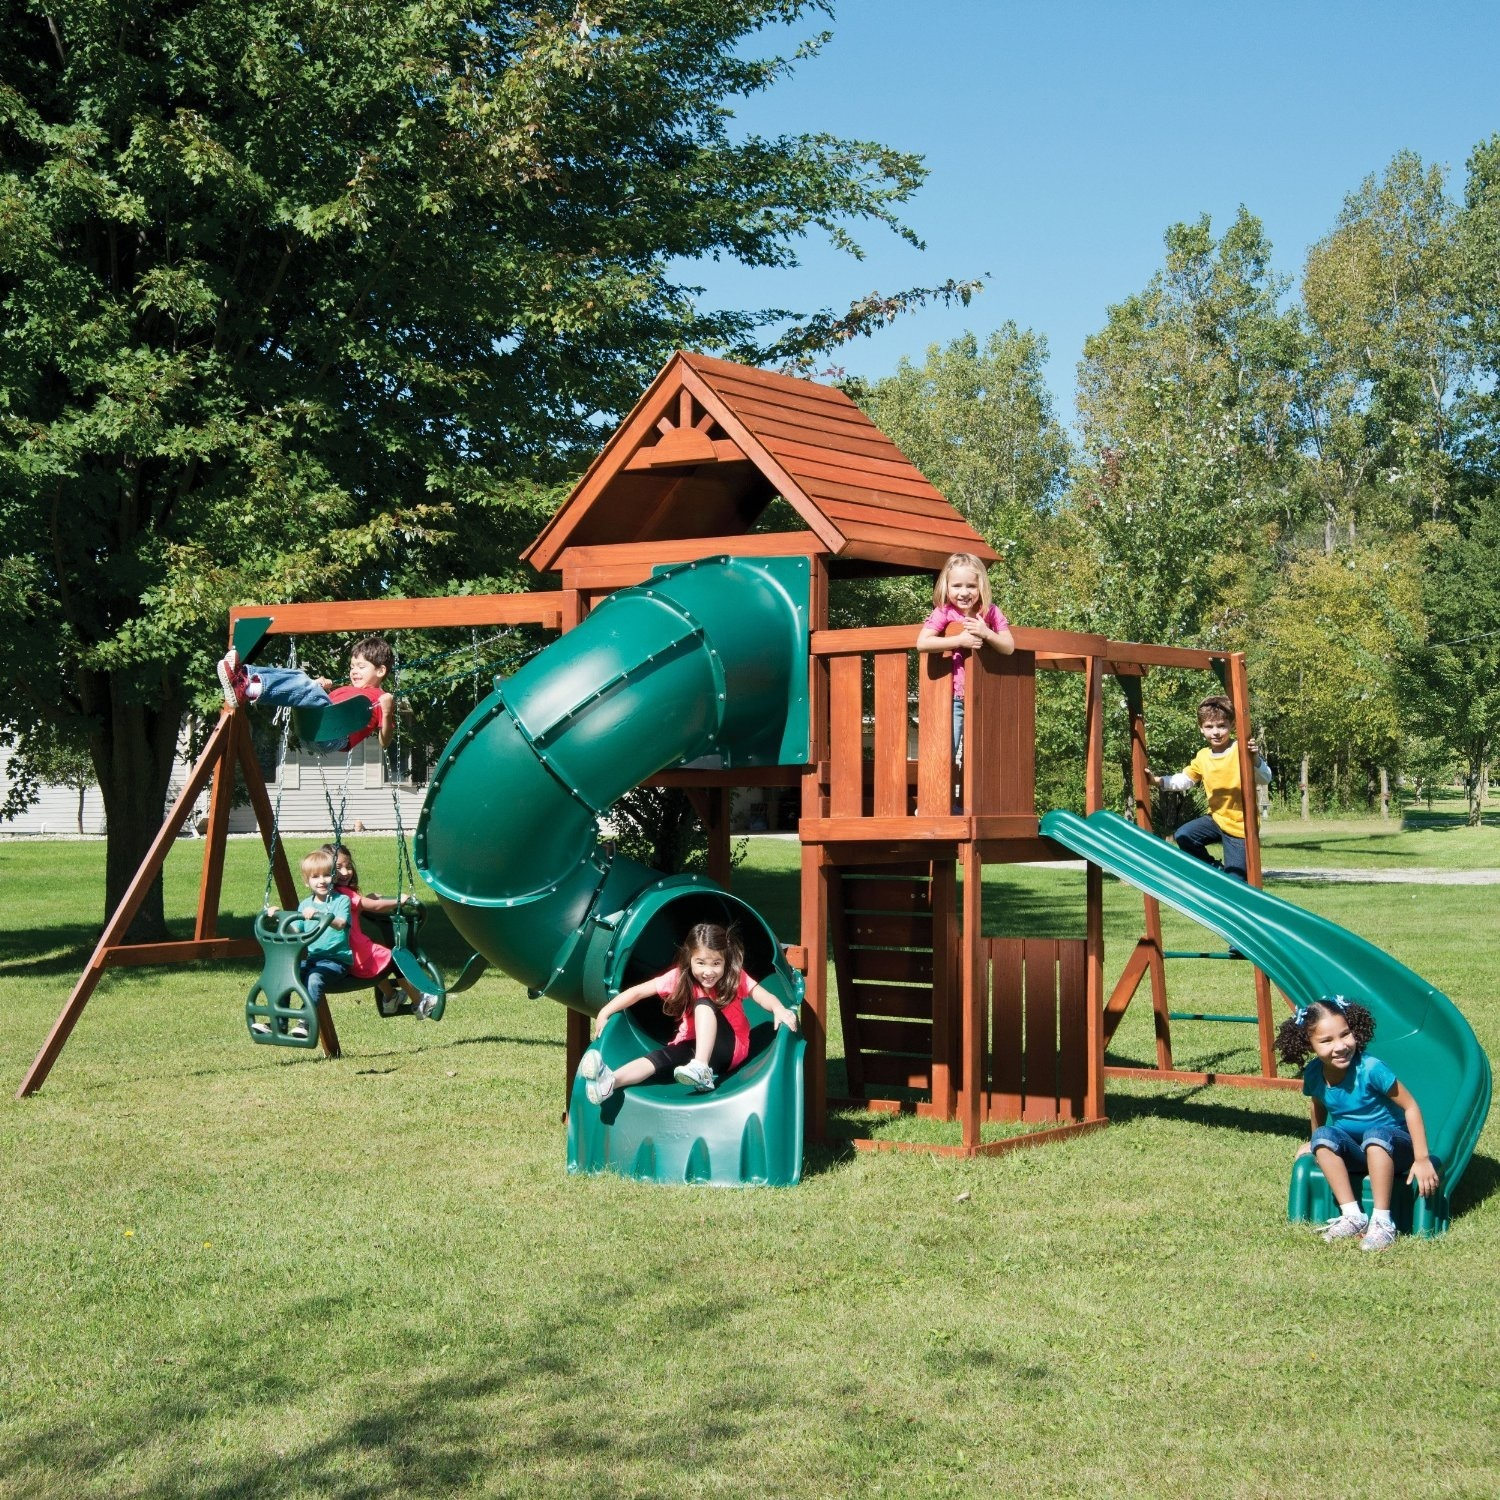 playground sets equipment backyard slides swing wood playset outdoor